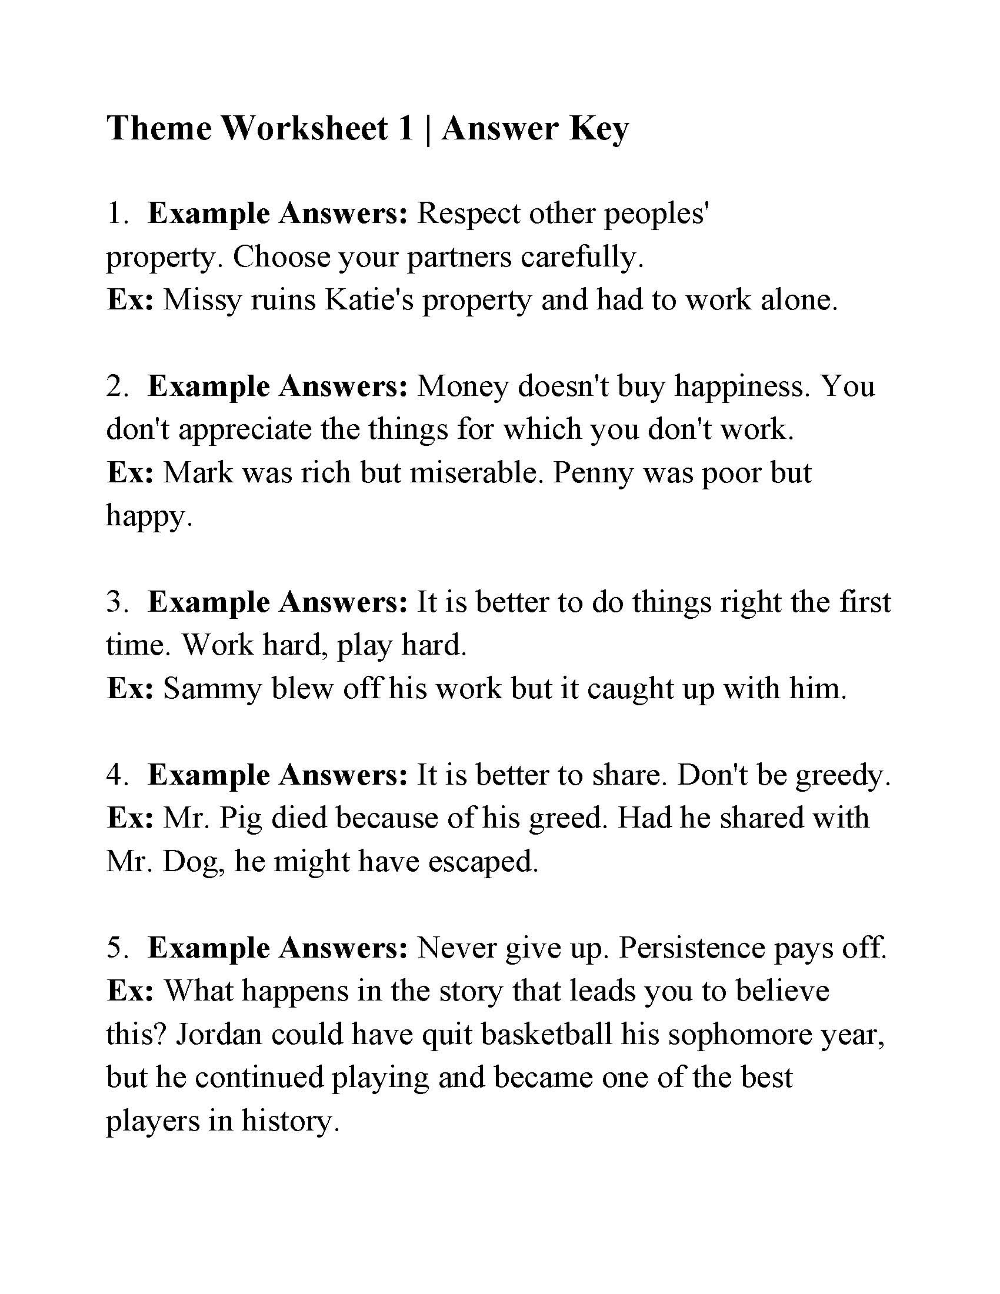 Theme Worksheet 1 Answers School Worksheets Literal Equations Kindergarten Worksheets Printable identifying the theme of a story worksheets. theme worksheet 1 answers school